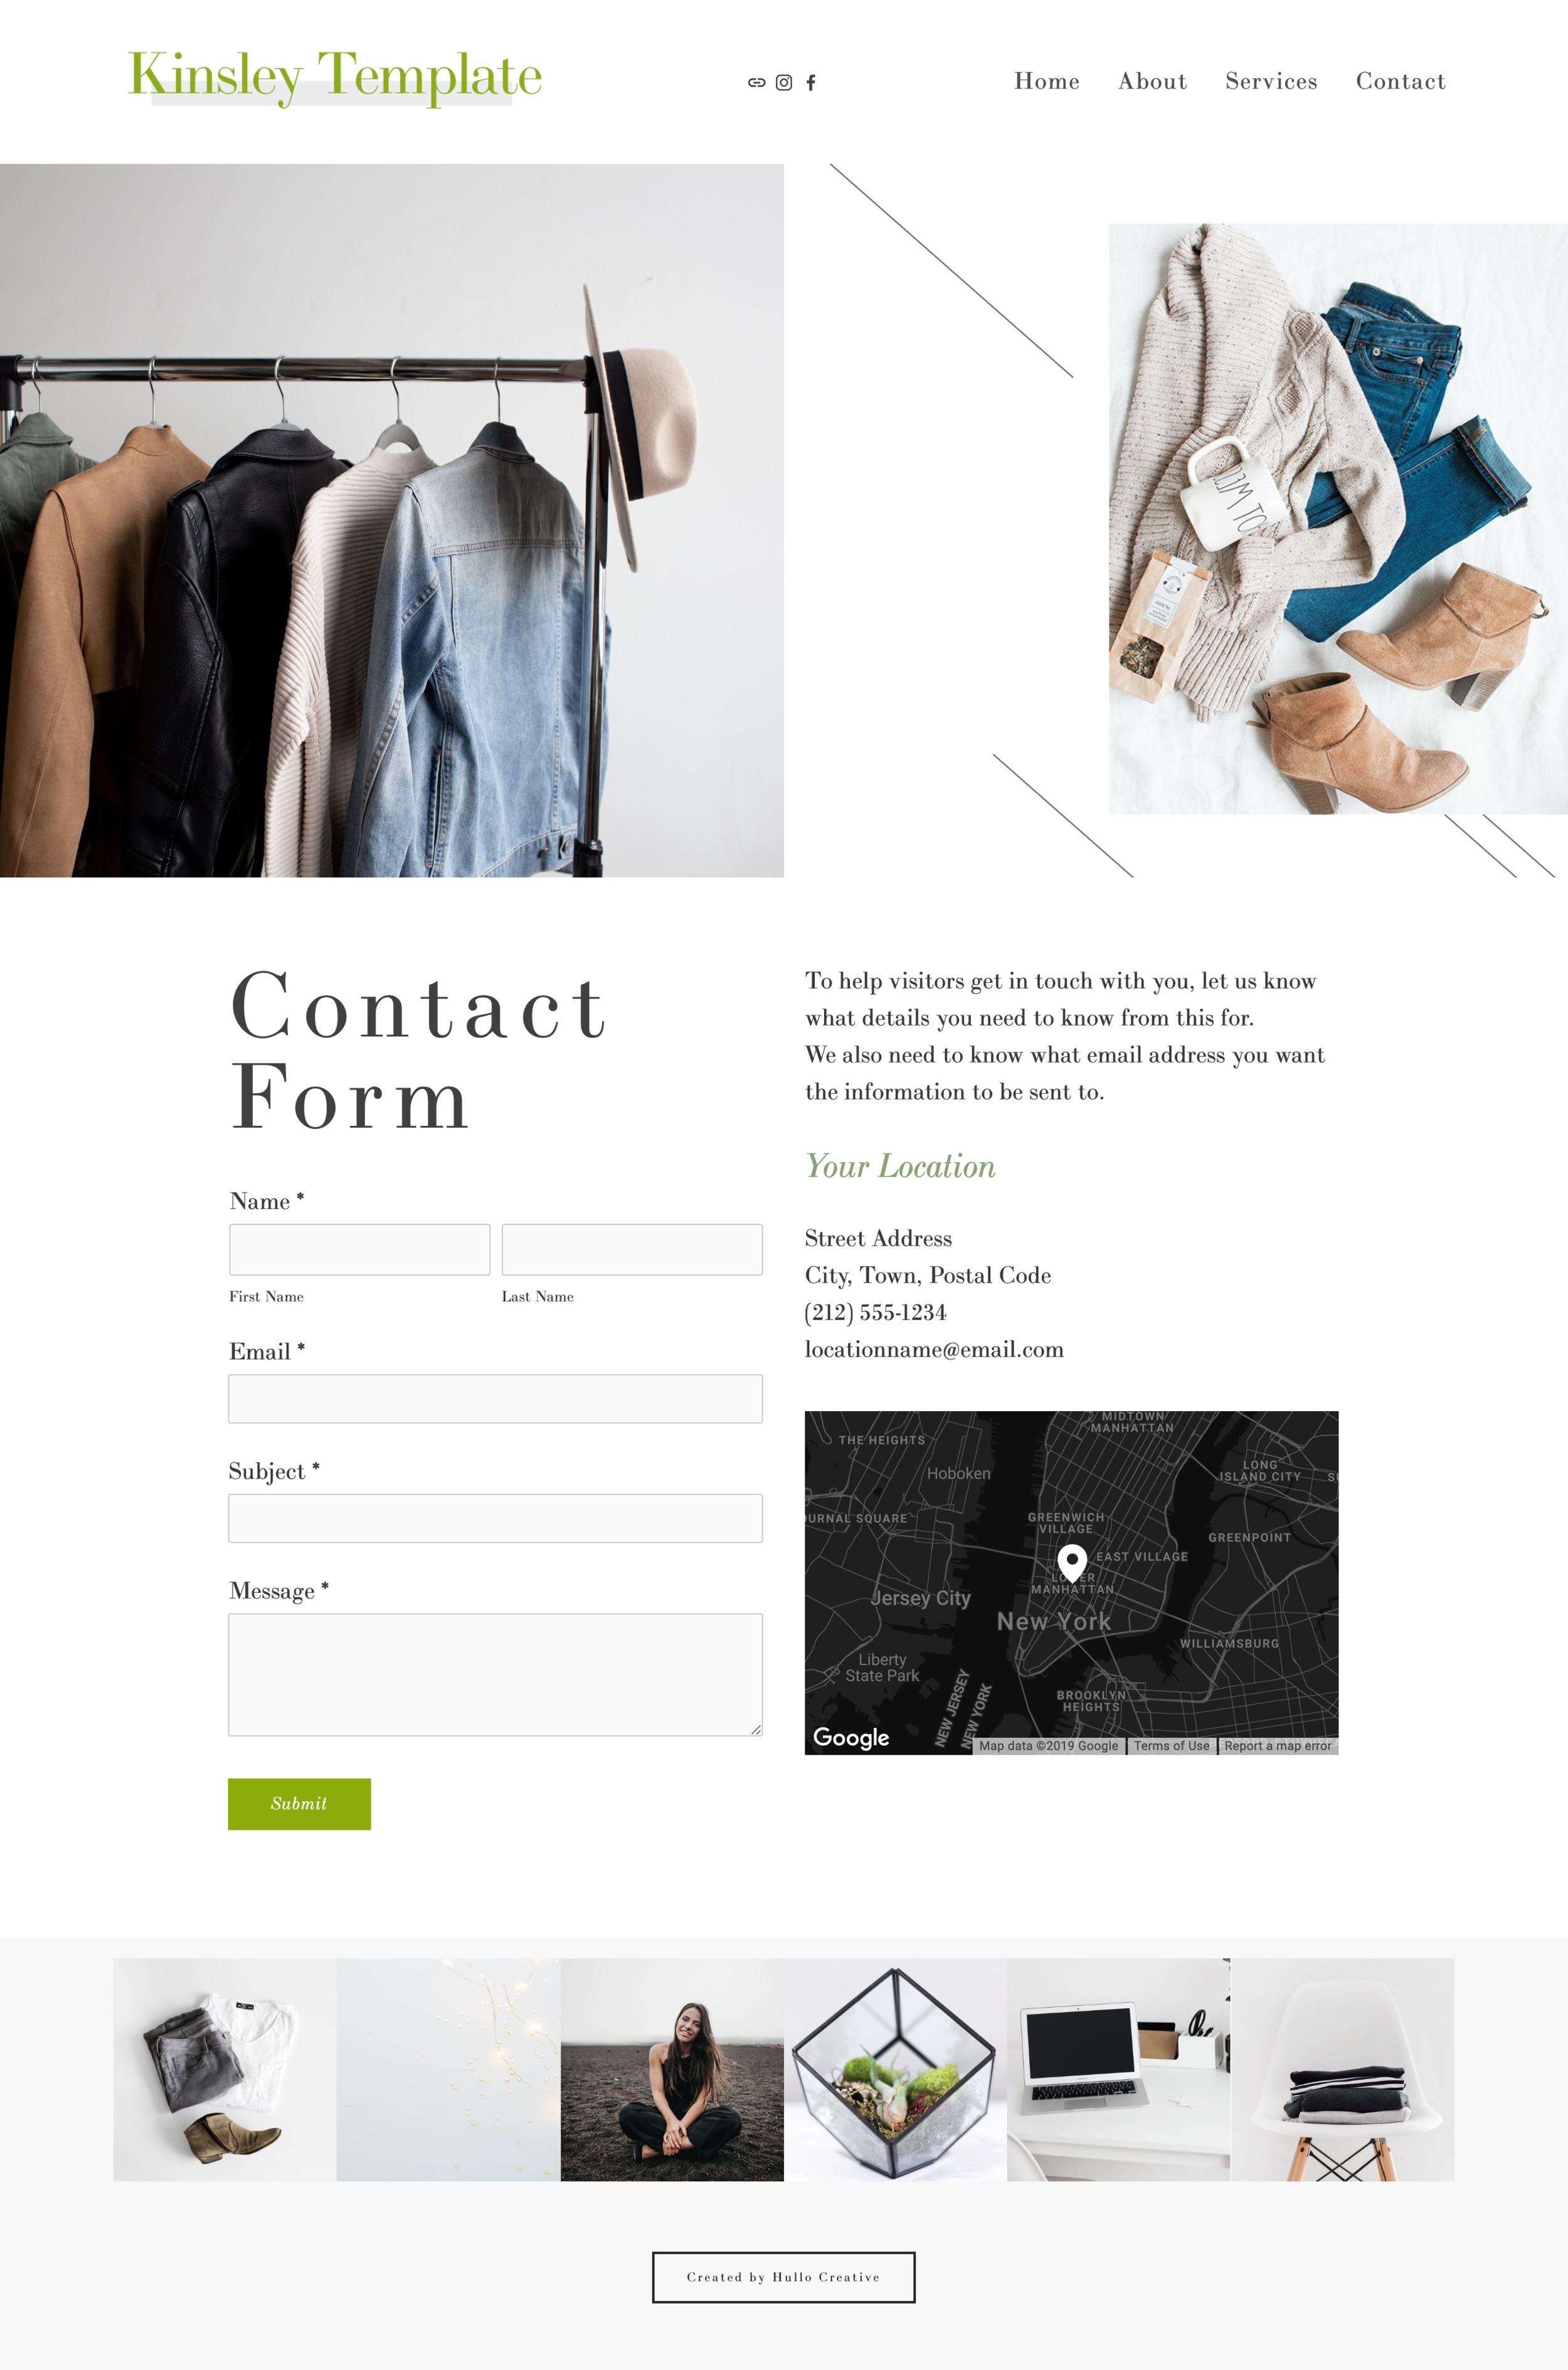 screencapture-kinsley-template-squarespace-contact-2019-10-04-11_00_15.png